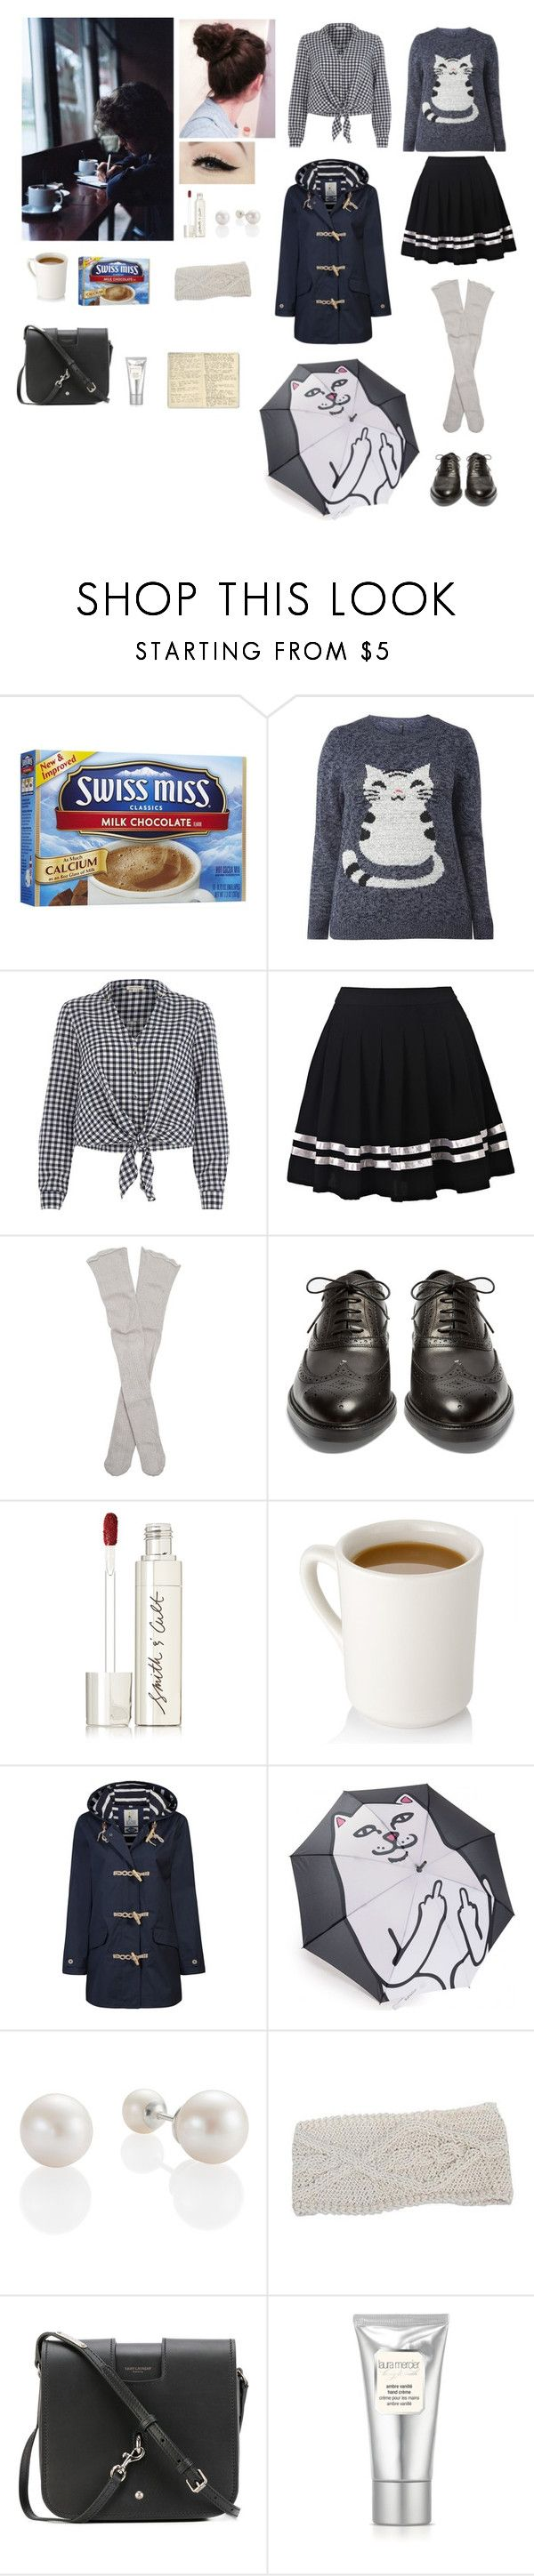 """""""Another rainy day"""" by me1ody ❤ liked on Polyvore featuring River Island, Free People, Burberry, Anatomy Of, Smith & Cult, Seasalt, NOVICA, Yves Saint Laurent, Laura Mercier and Moleskine"""